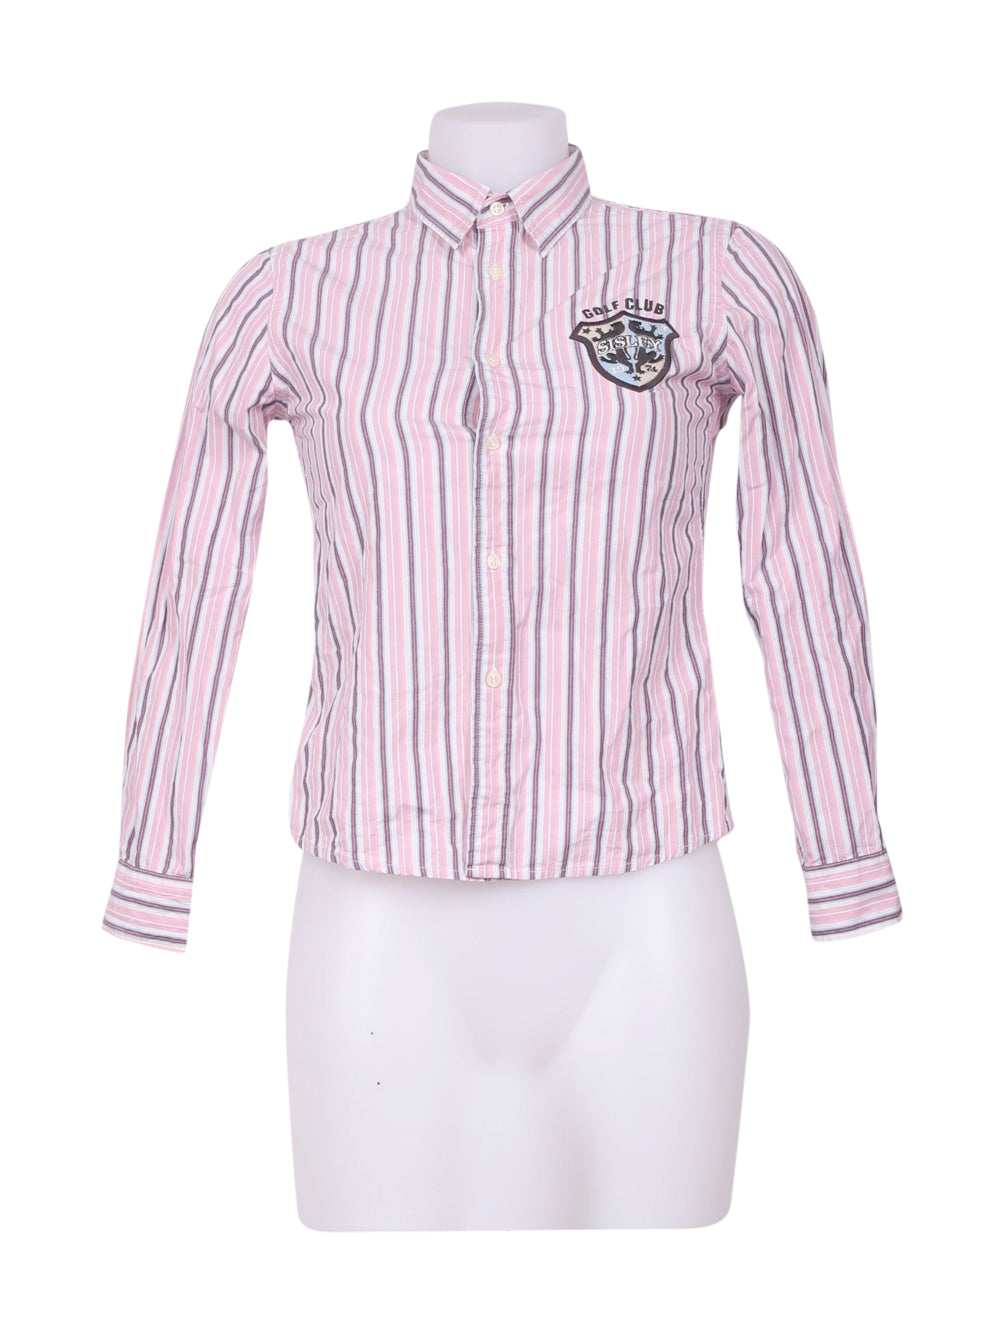 Front photo of Preloved Sisley Pink Woman's shirt - size 8/S